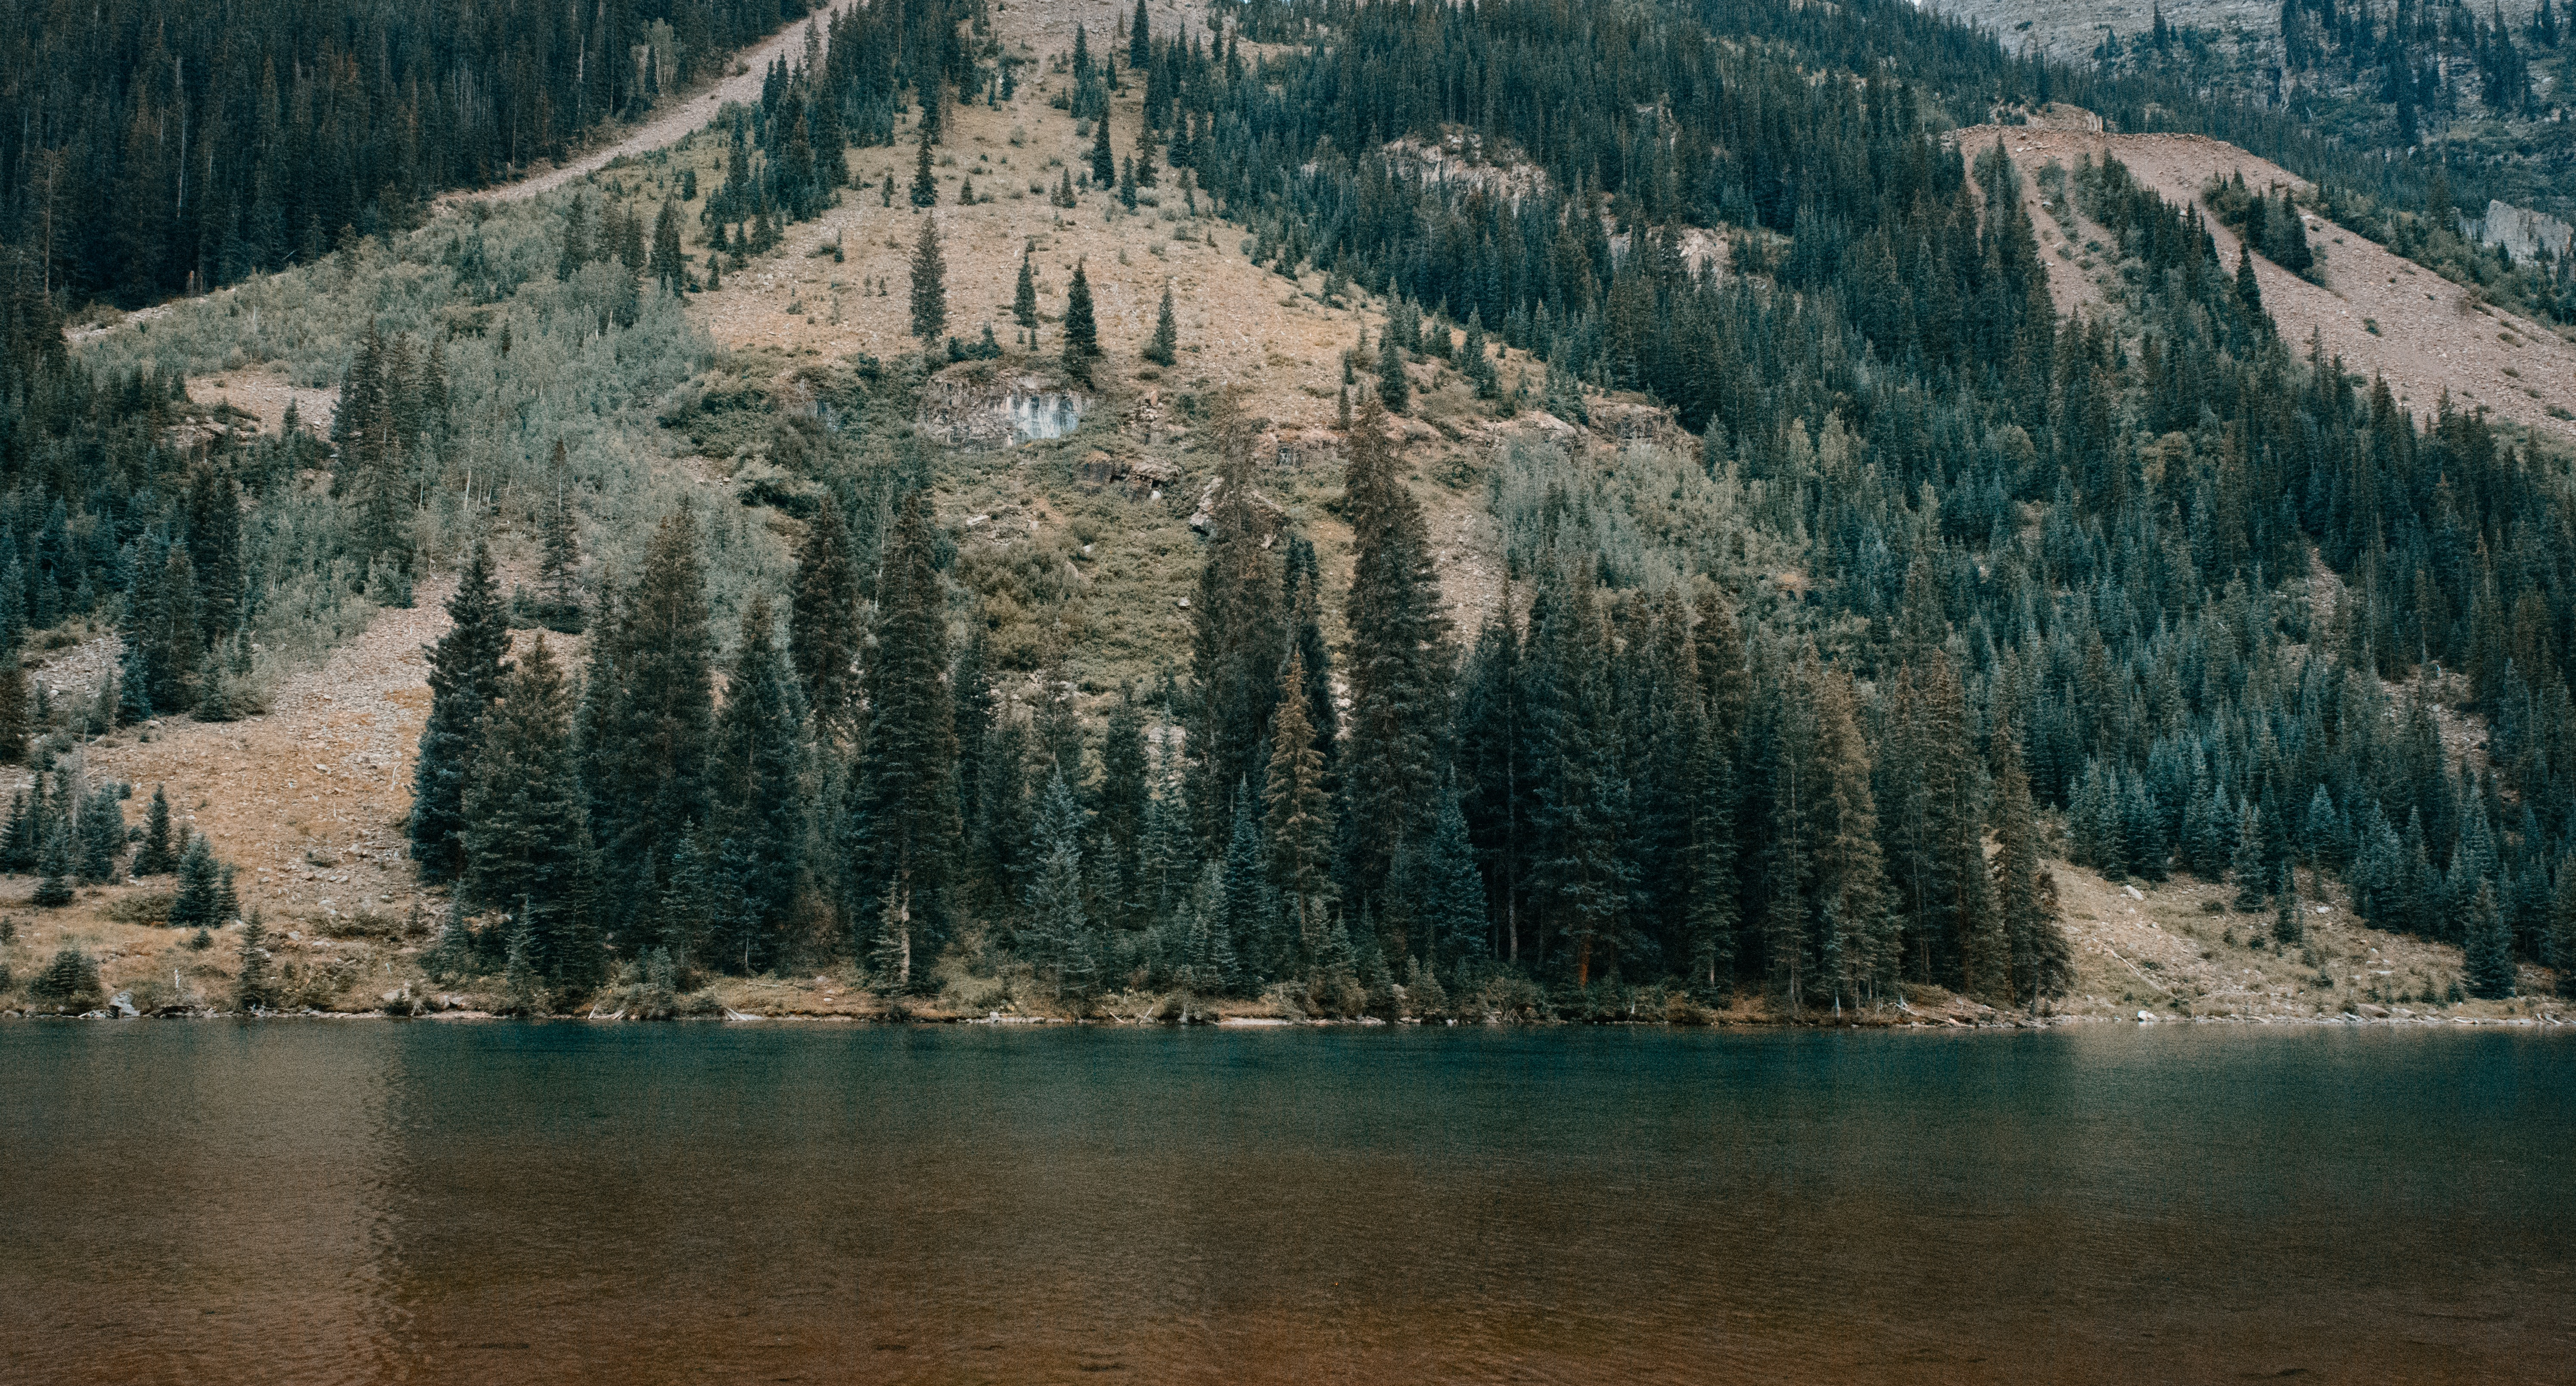 Clumps of evergreen trees on a lakeshore in Aspen